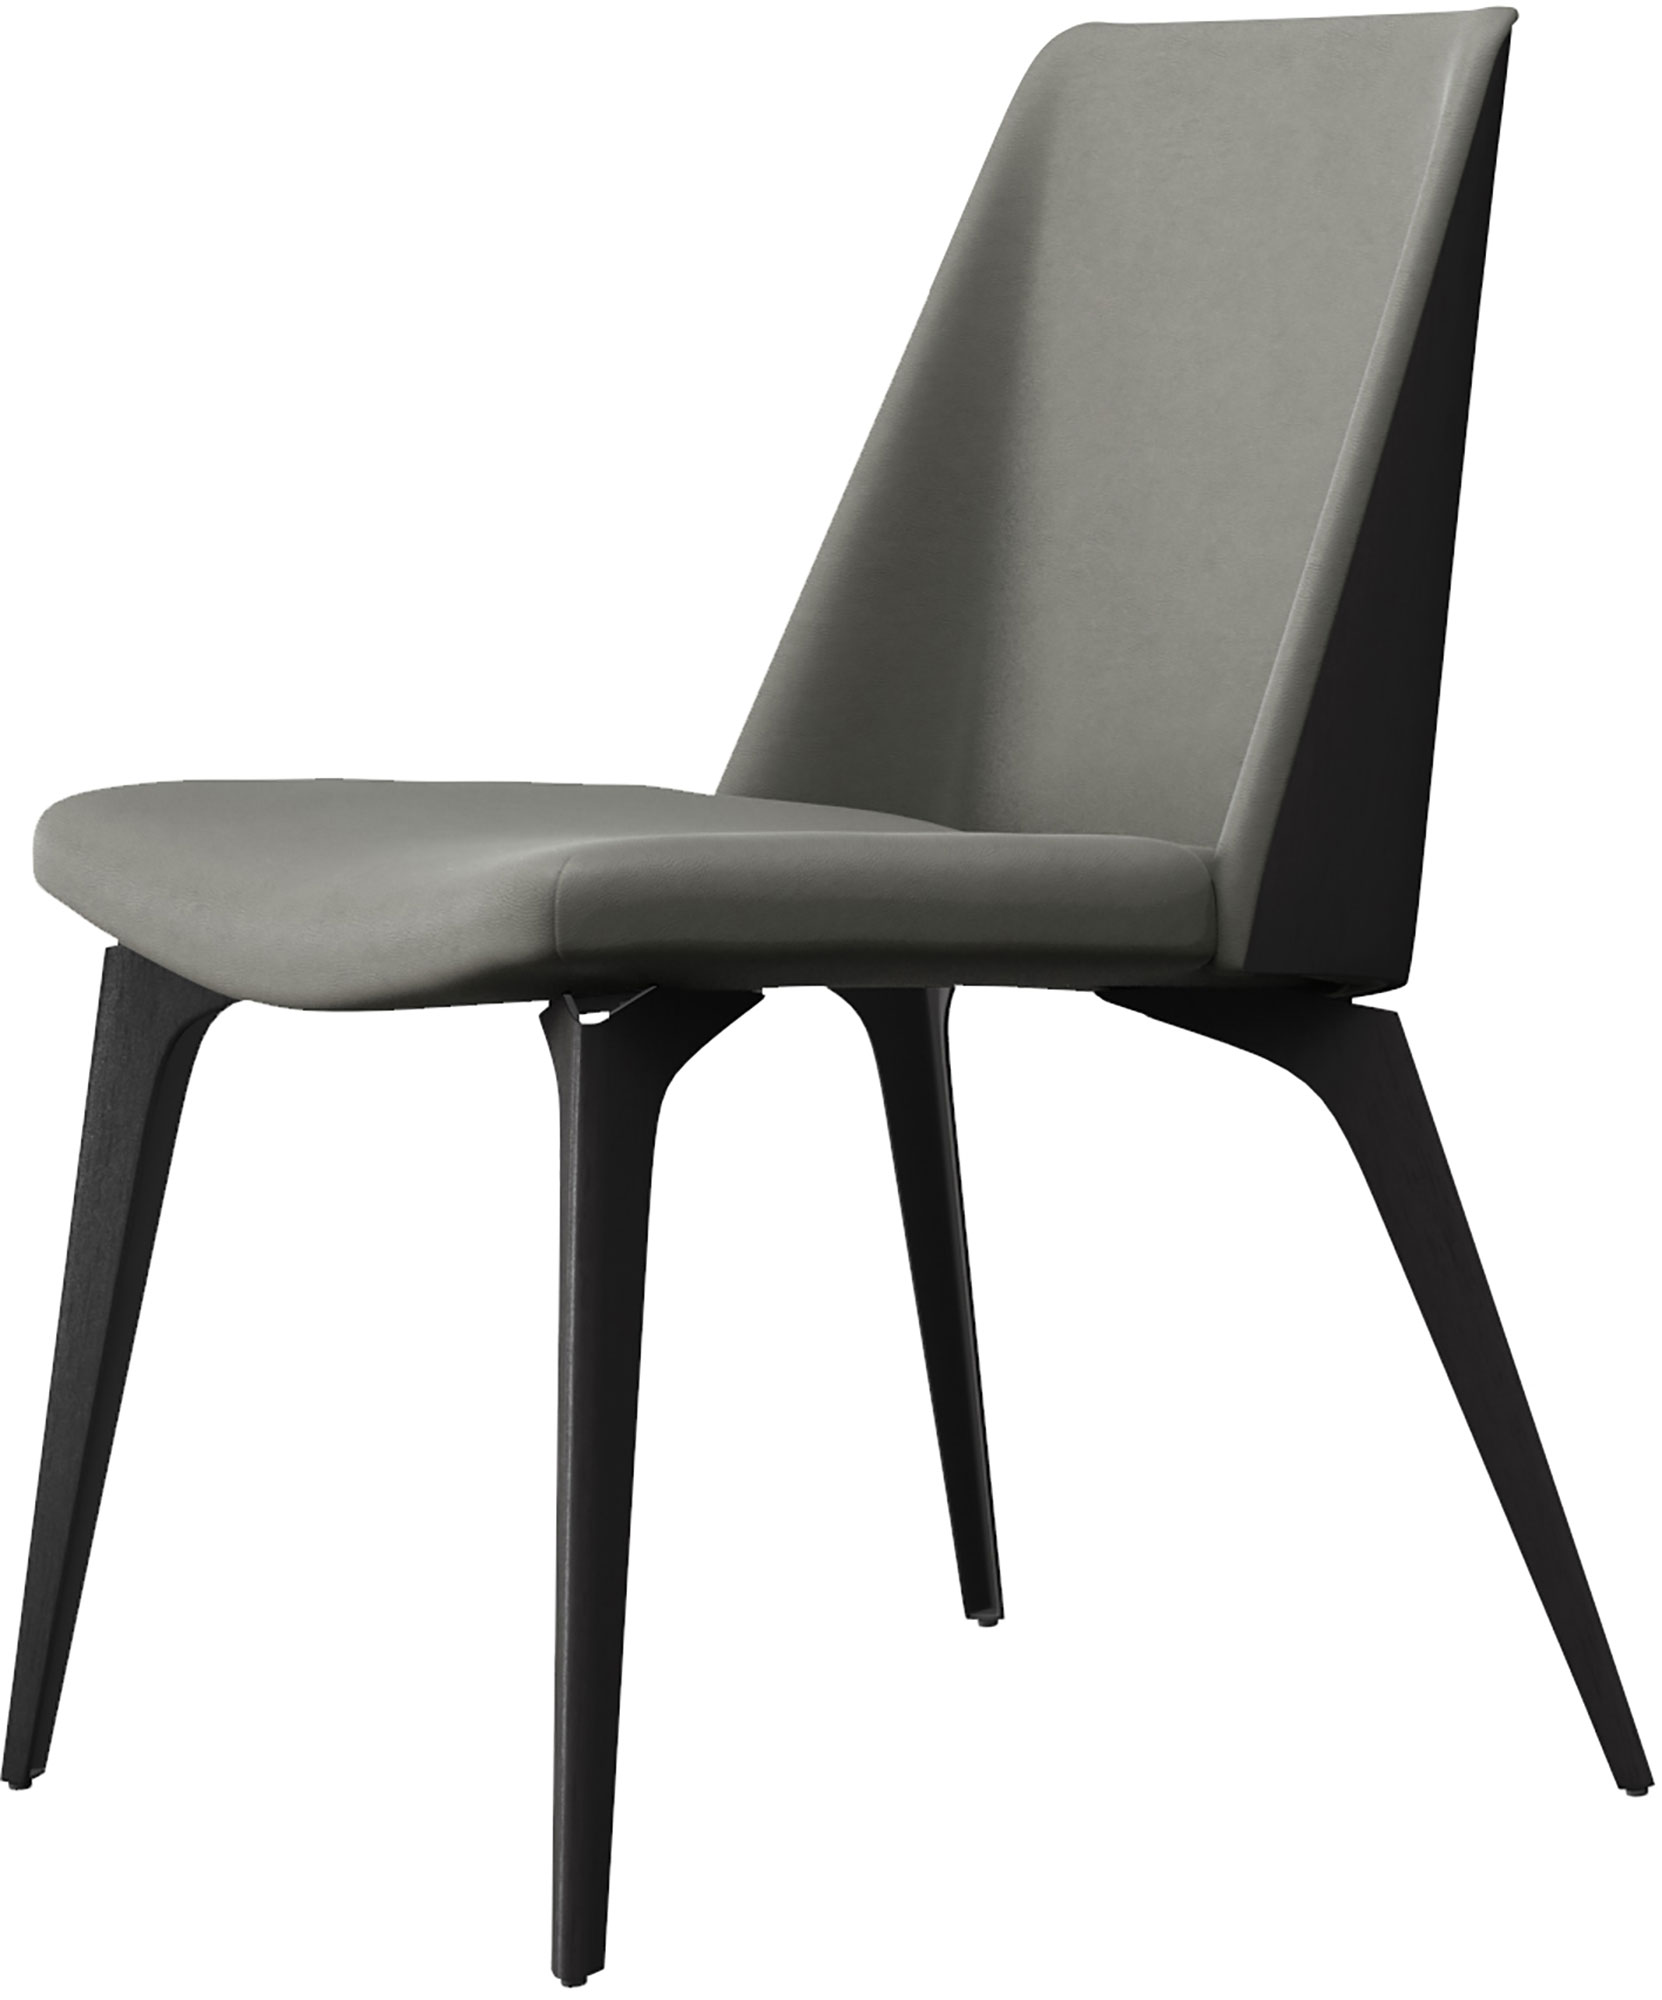 Orchard Chair